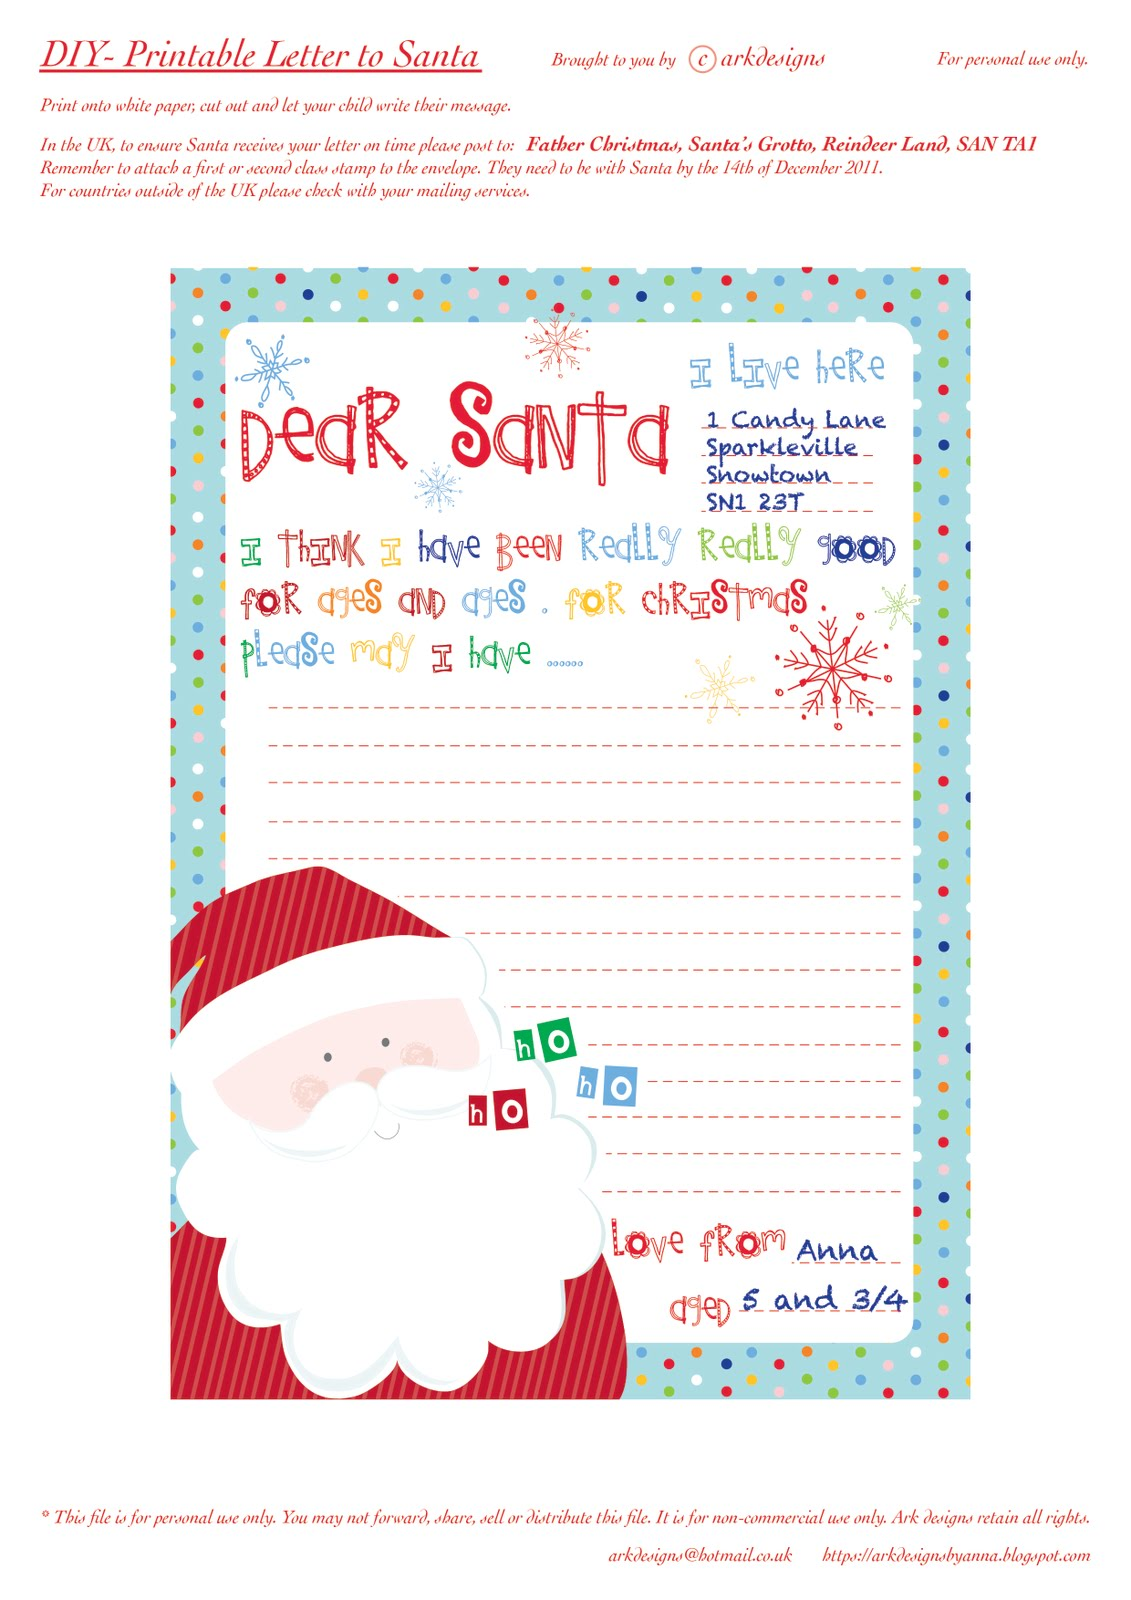 heres my printable letter to santafather christmas